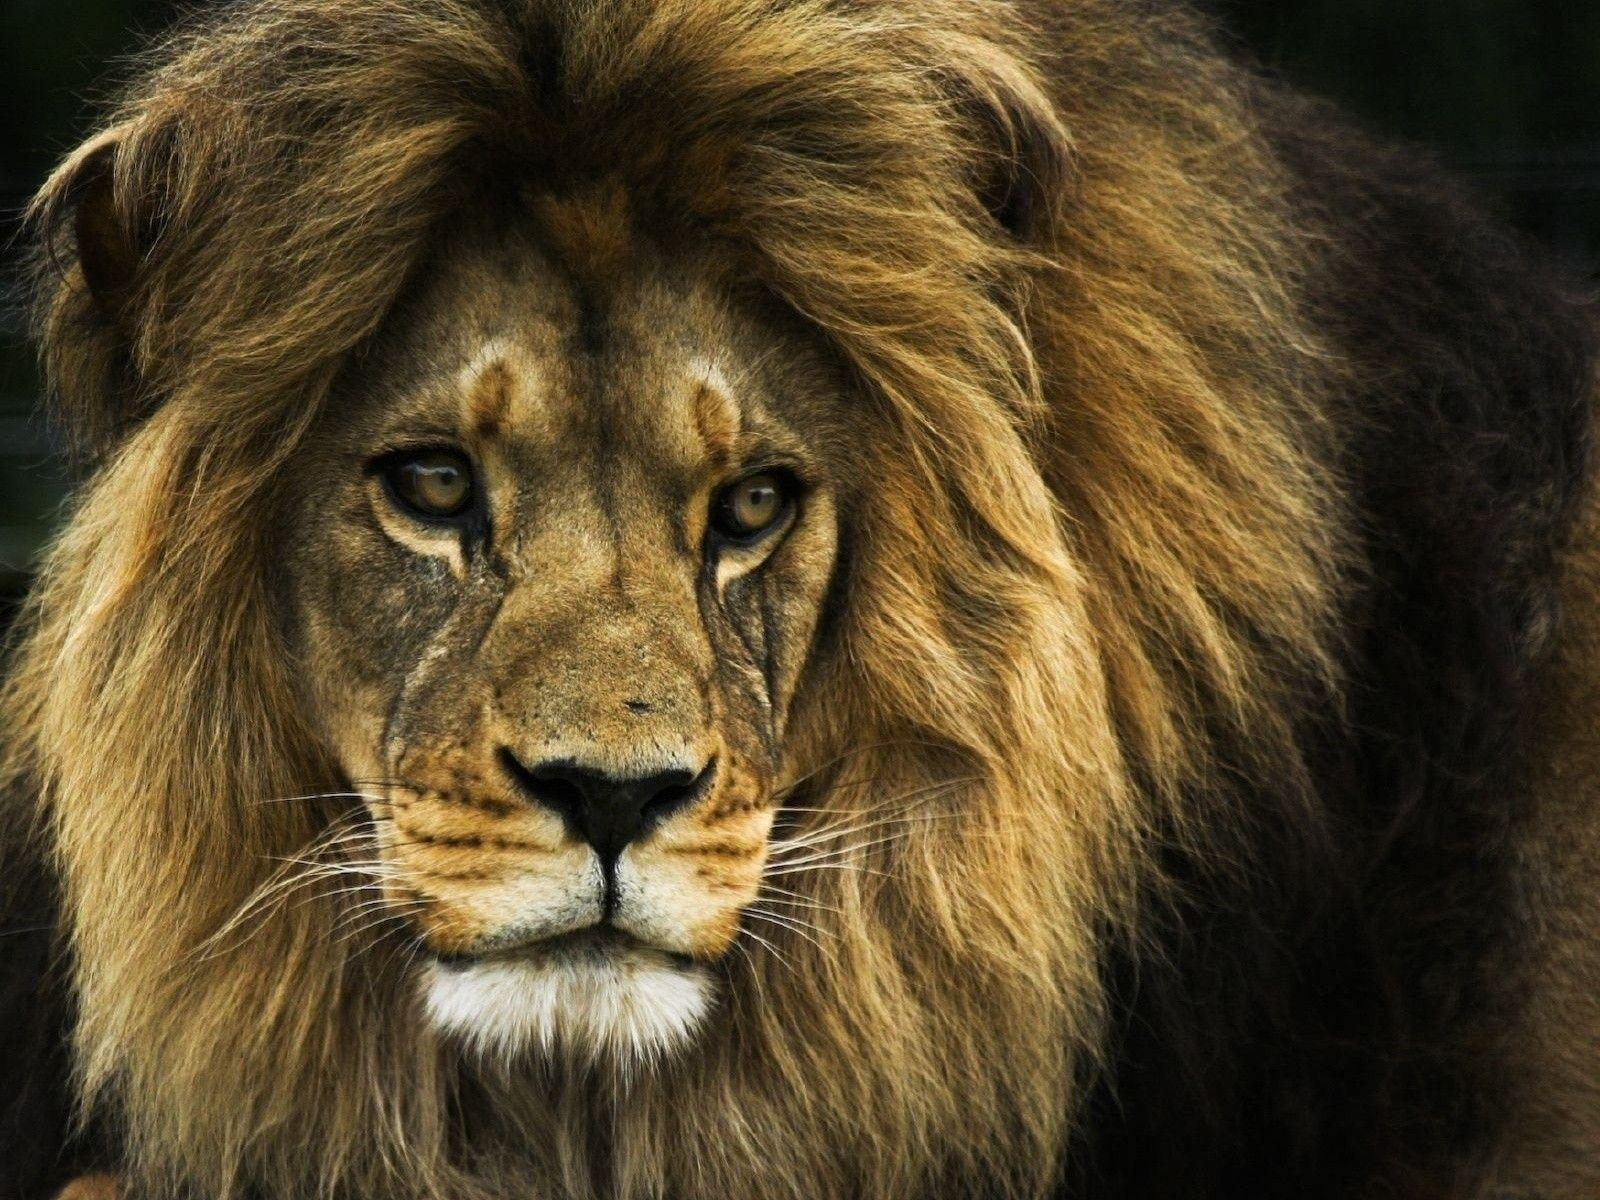 Lion Face Wallpapers - Wallpaper Cave